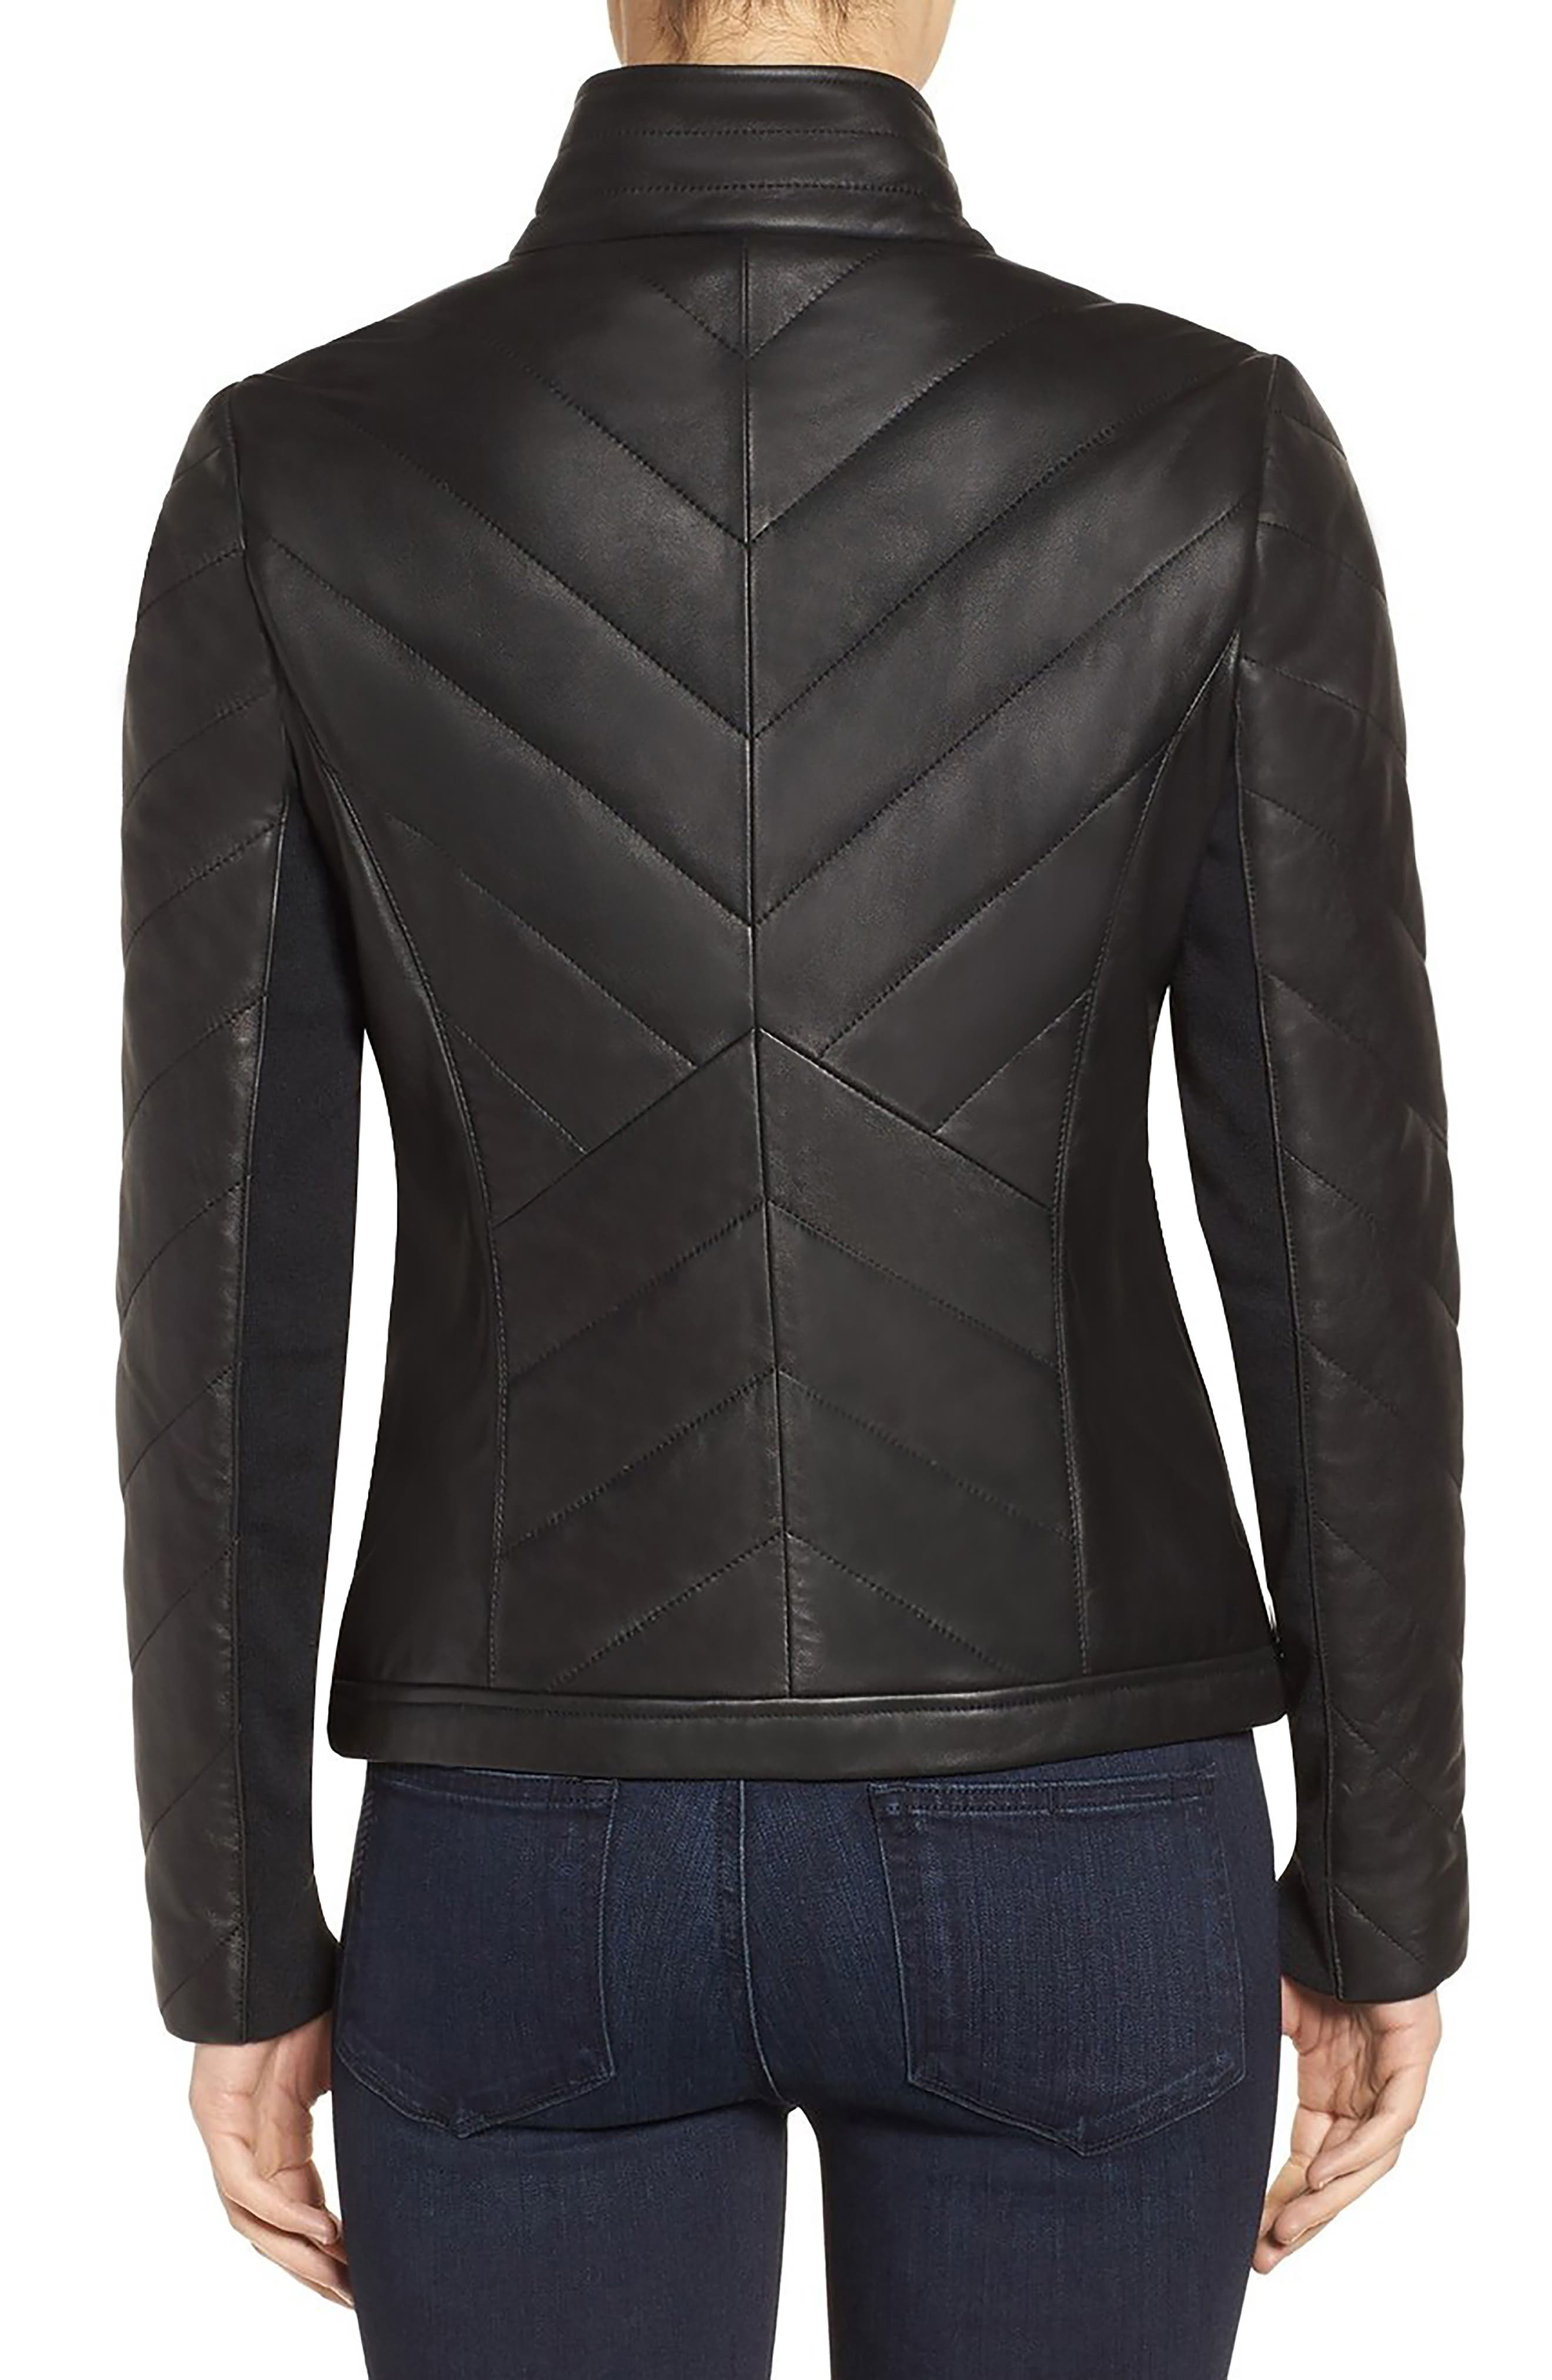 Badgley Mischka Eloise Quilted Leather Moto Jacket,                             Alternate thumbnail 2, color,                             001